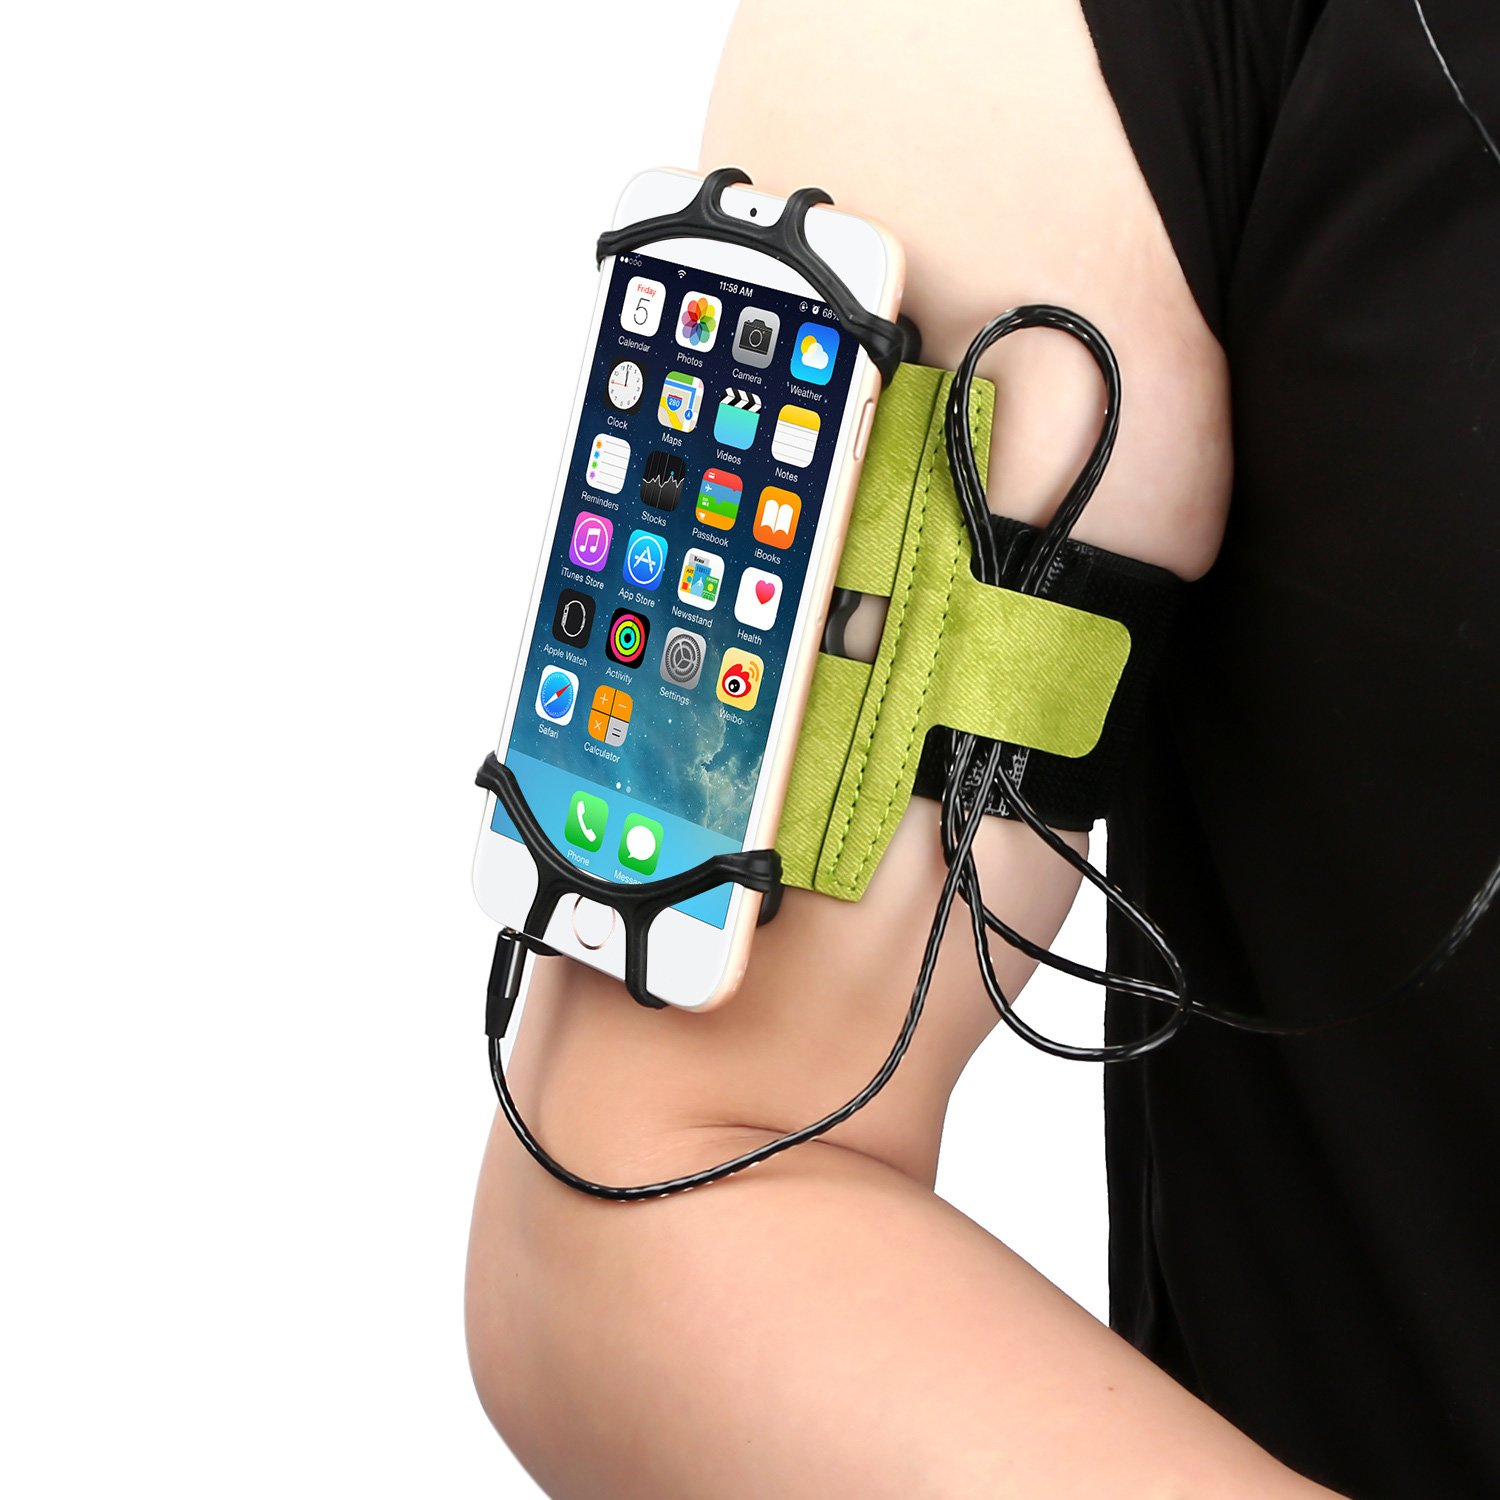 WAAO Sports Armband: Cell Phone Holder Case Arm Band Strap Pouch Mobile Exercise Running Workout Compatible with Apple iPhone X 8 7 6 6S Plus Android Samsung Galaxy S9 S8 S6 Note 8 (180° Rotatable)